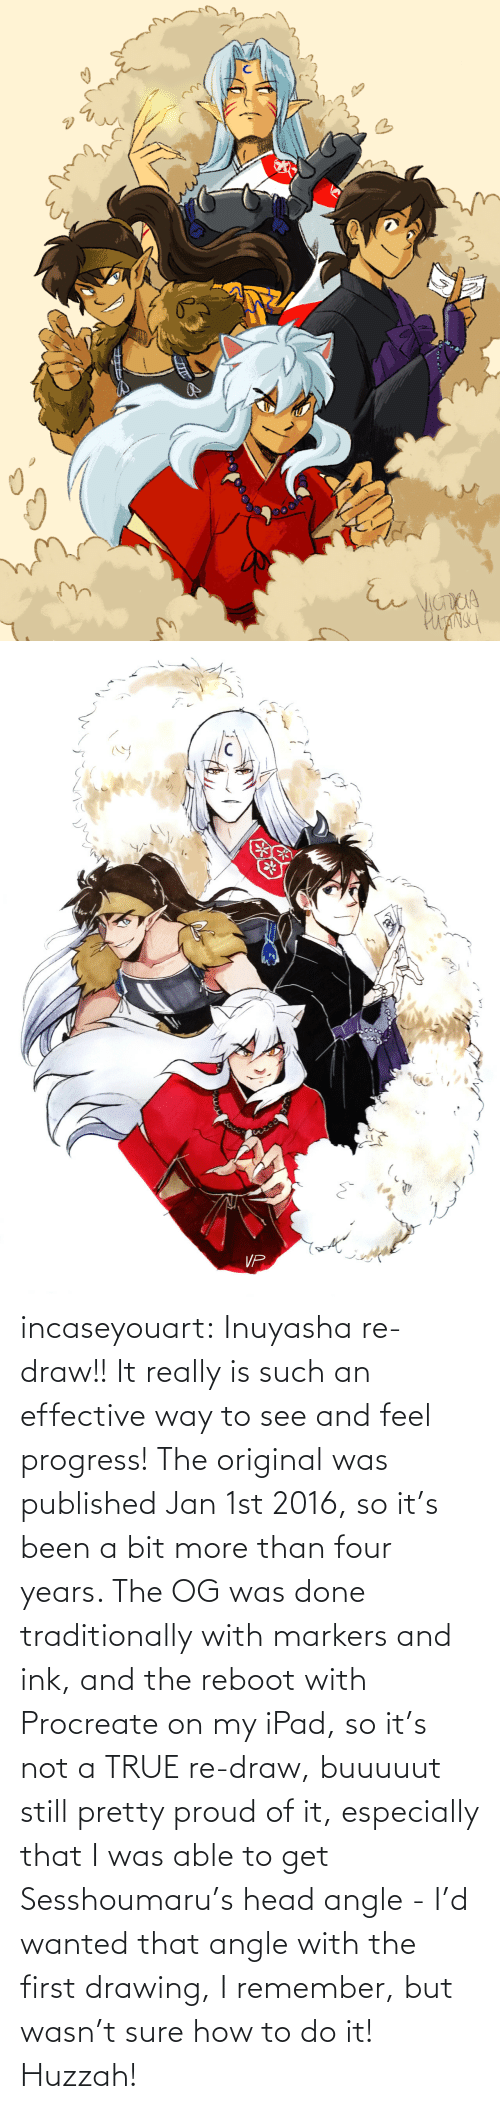 Main: incaseyouart:  Inuyasha re-draw!! It really is such an effective way to see and feel progress! The original was published Jan 1st 2016, so it's been a bit more than four years. The OG was done traditionally with markers and ink, and the reboot with Procreate on my iPad, so it's not a TRUE re-draw, buuuuut still pretty proud of it, especially that I was able to get Sesshoumaru's head angle - I'd wanted that angle with the first drawing, I remember, but wasn't sure how to do it! Huzzah!